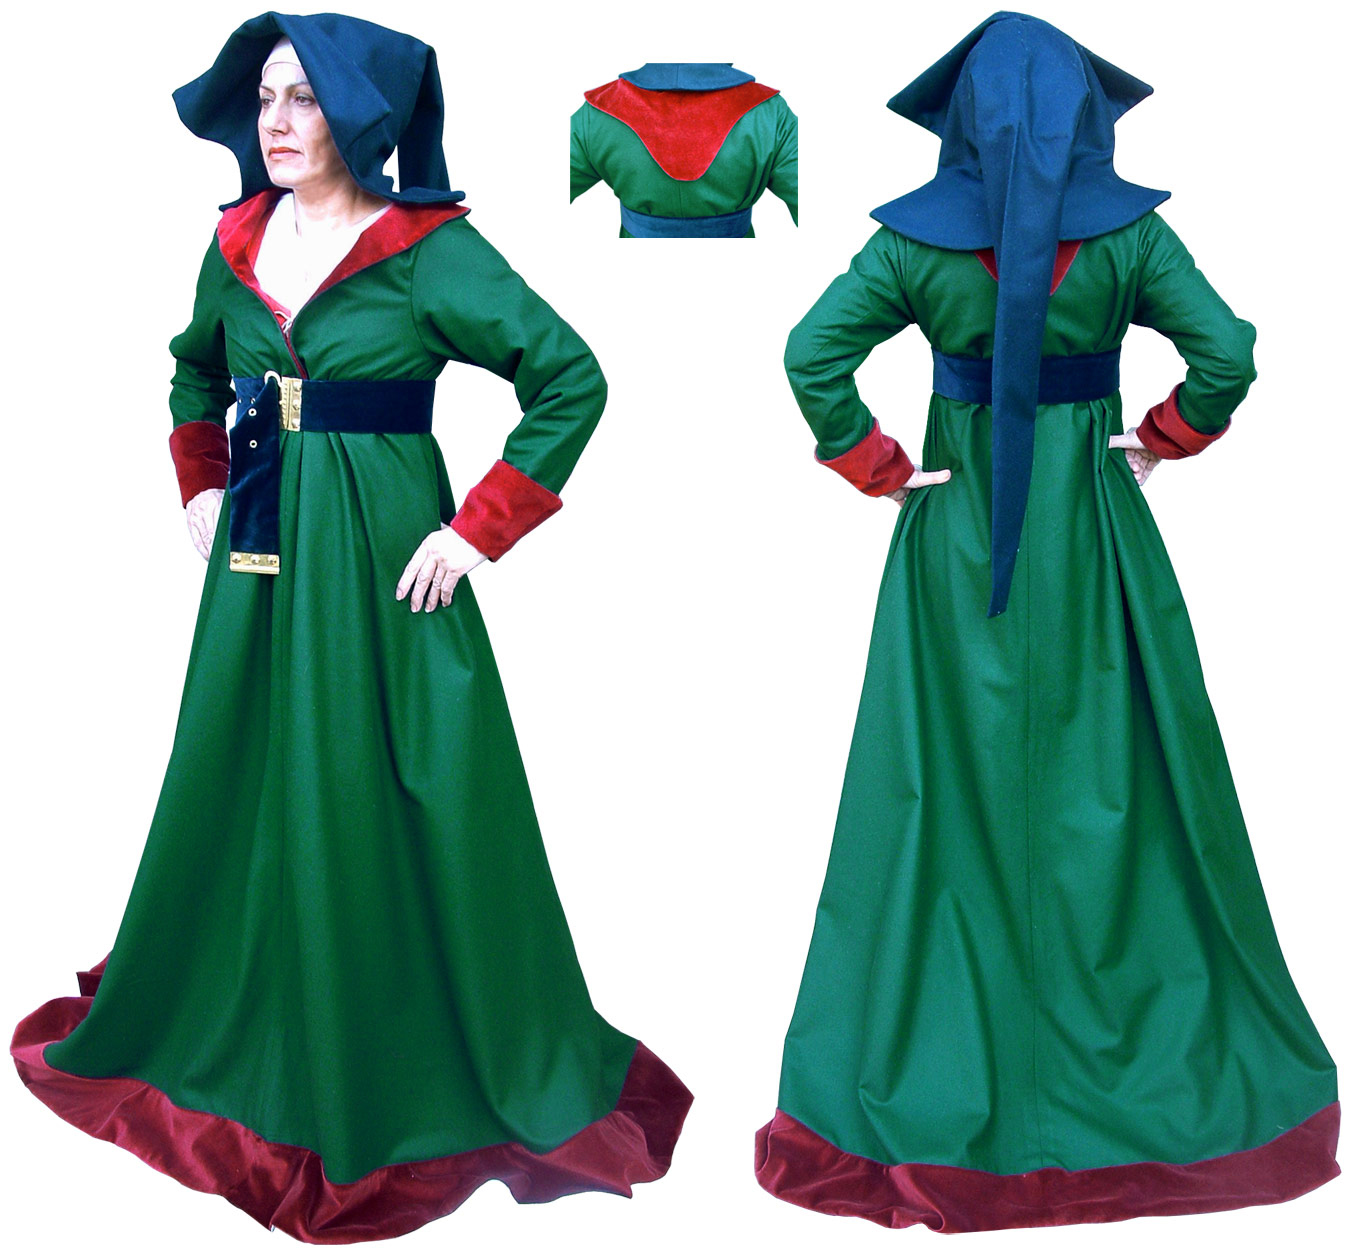 Medieval Clothing For Women Medieval women costumes